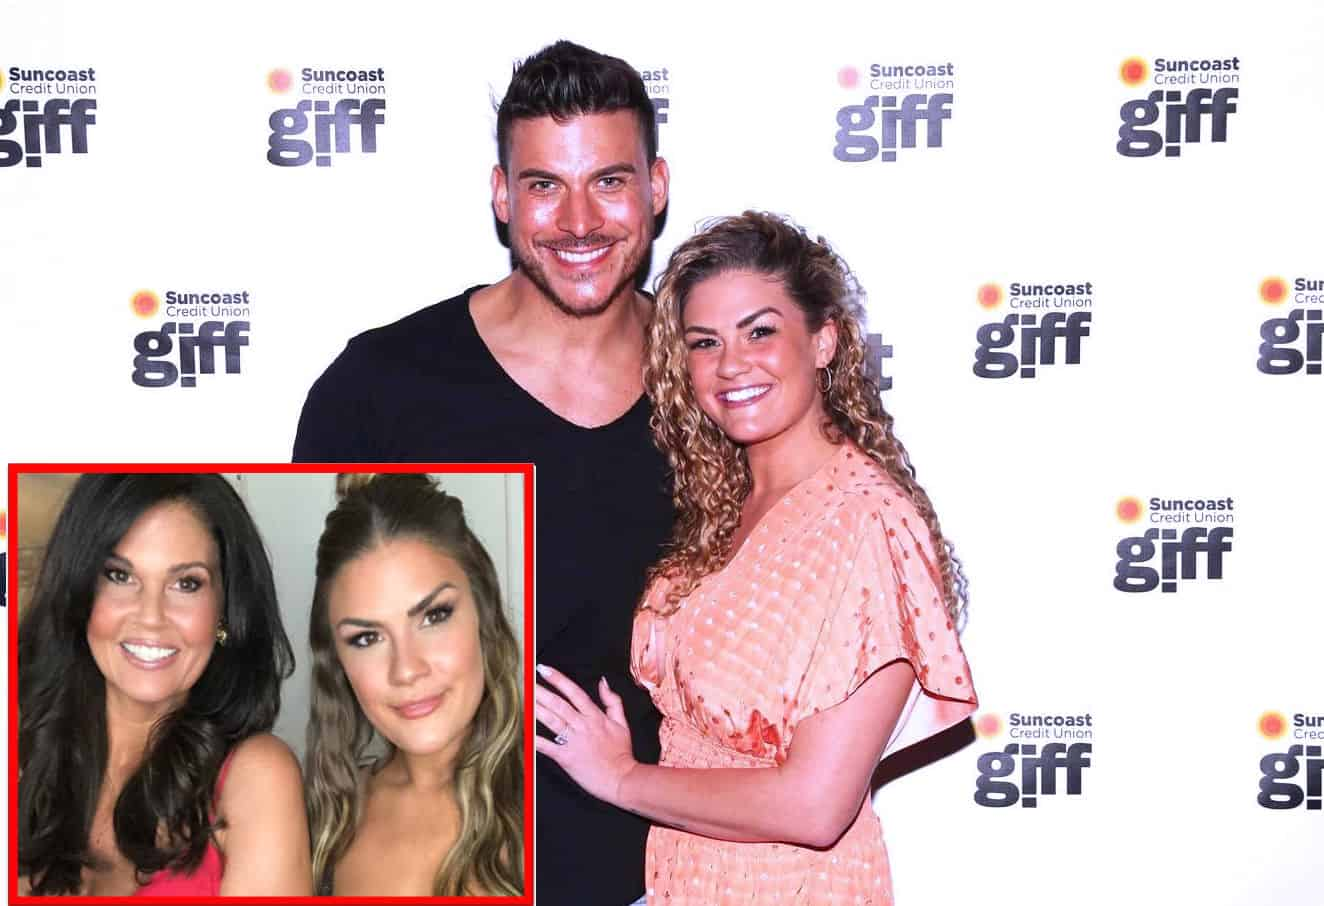 Brittany Cartwright Asks for Prayers as Mom Remains in ICU, Plus Jax Taylor is Reportedly on the Chopping Block Amid Vanderpump Rules Firings